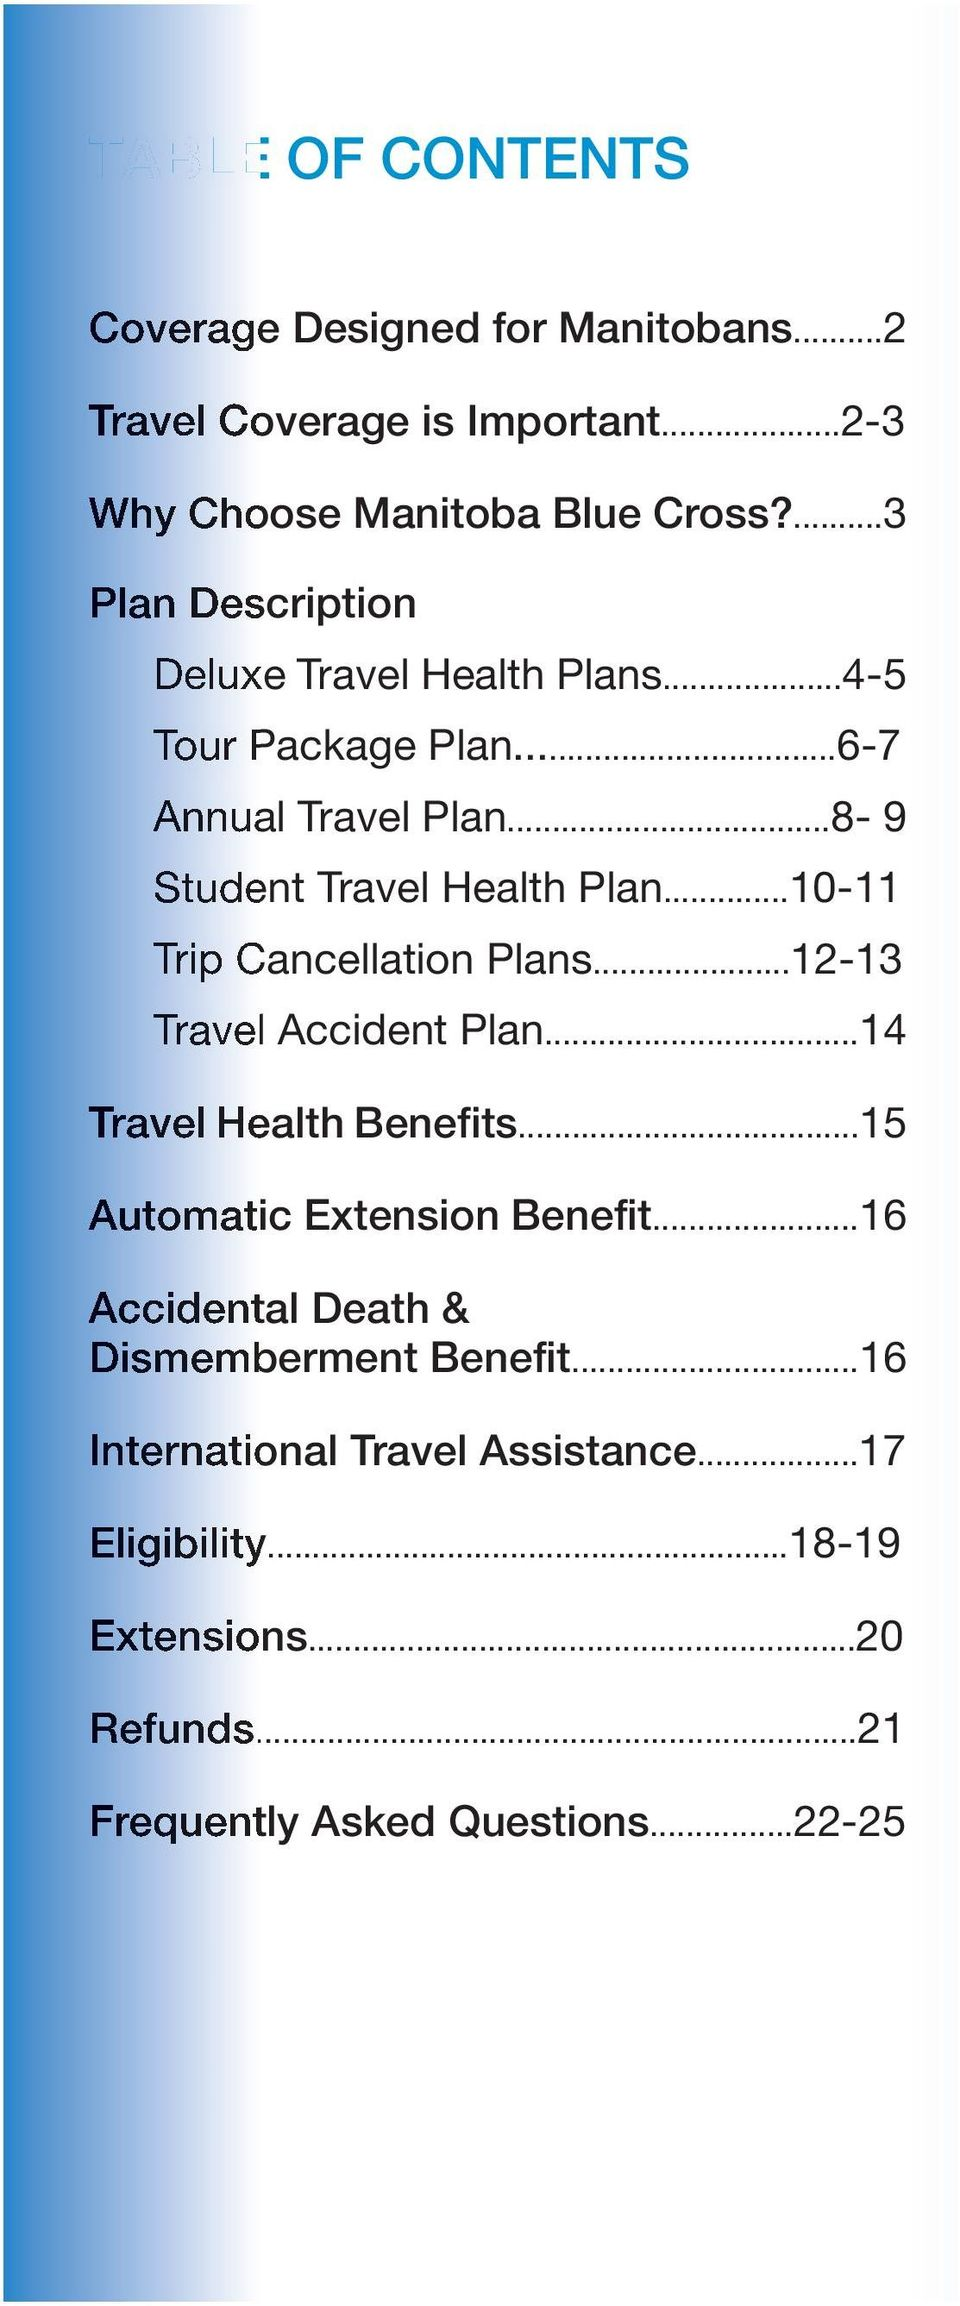 ..10-11 Trip Cancellation Plans...12-13 Travel Accident Plan...14 Travel Health Benefits...15 Automatic Extension Benefit.